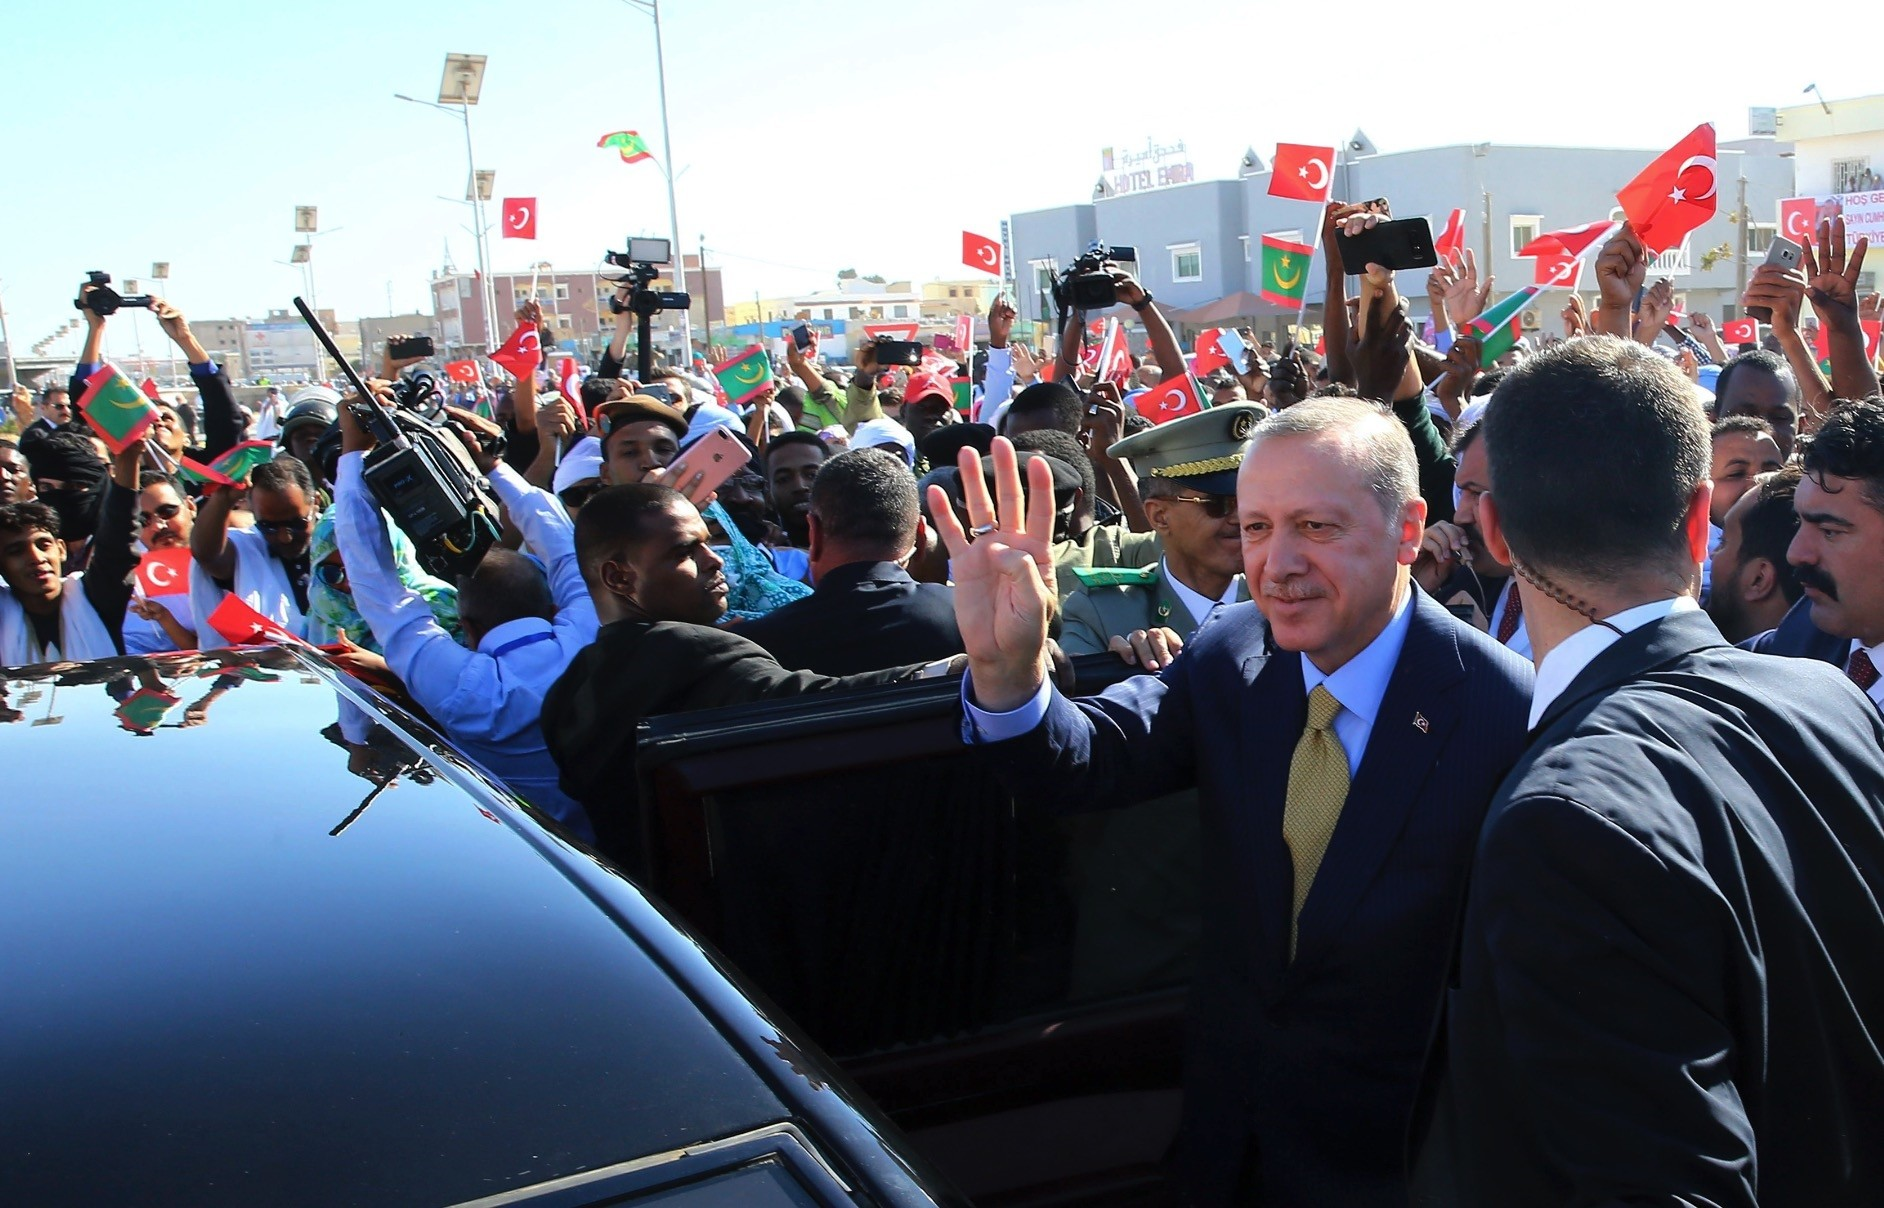 Turkish and Mauritanian security and people surround the car of President Erdou011fan as he waves during a welcoming ceremony at the airport in Nouakchott, Mauritania, Feb. 28.